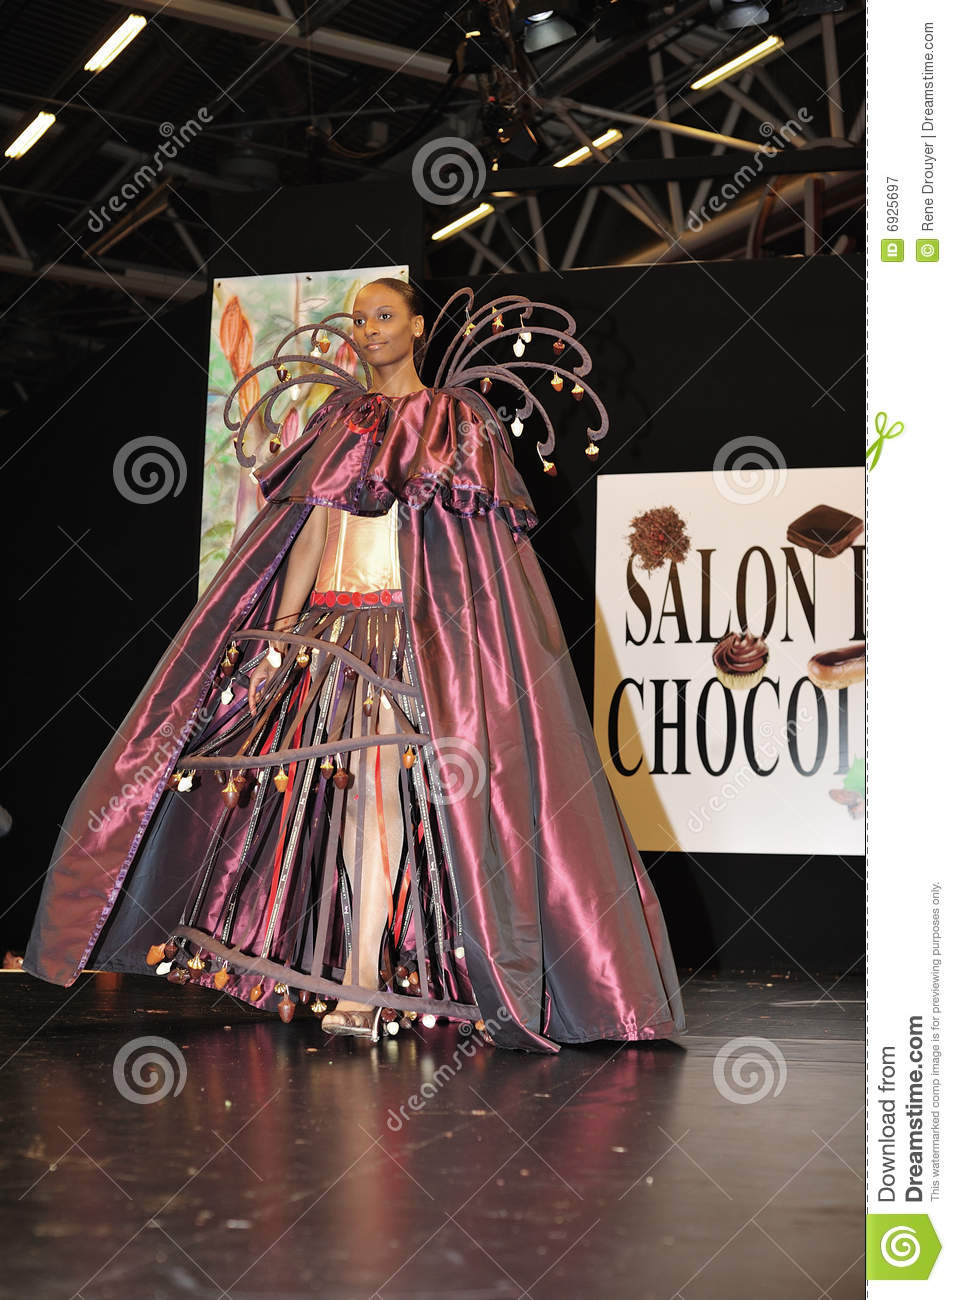 Salon du chocolat 2008 editorial photography image 6925697 for Salon du design paris